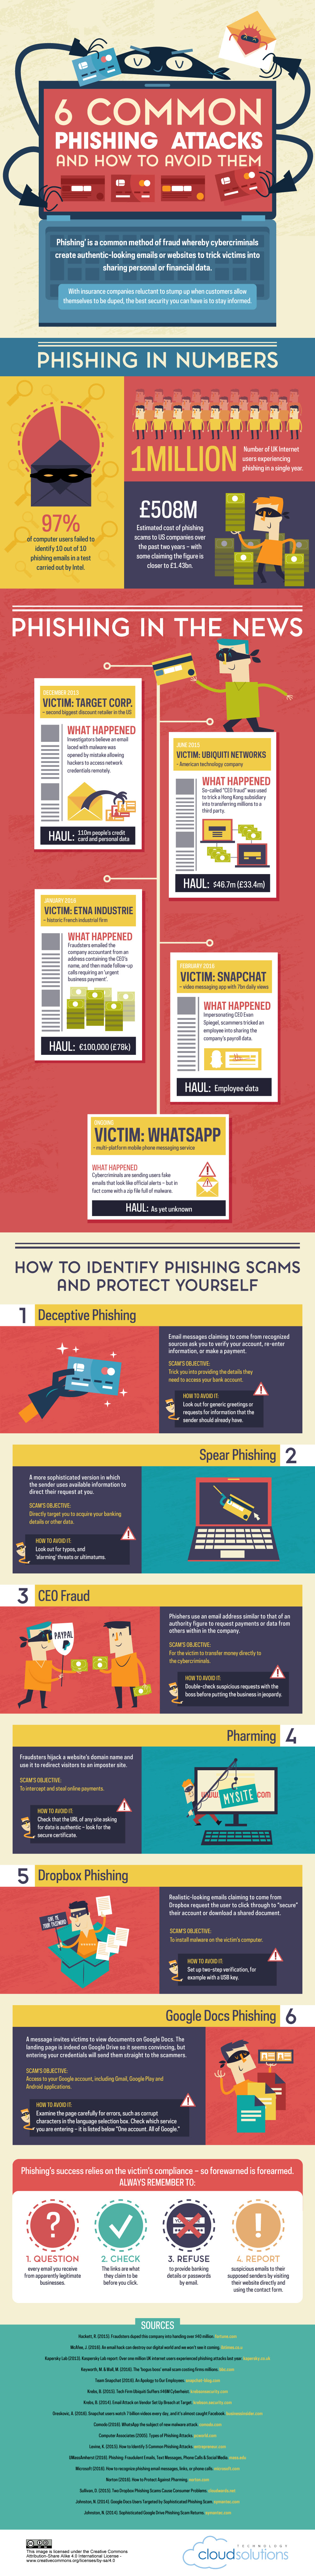 6 Most Common Phishing Attacks and How To Avoid Them